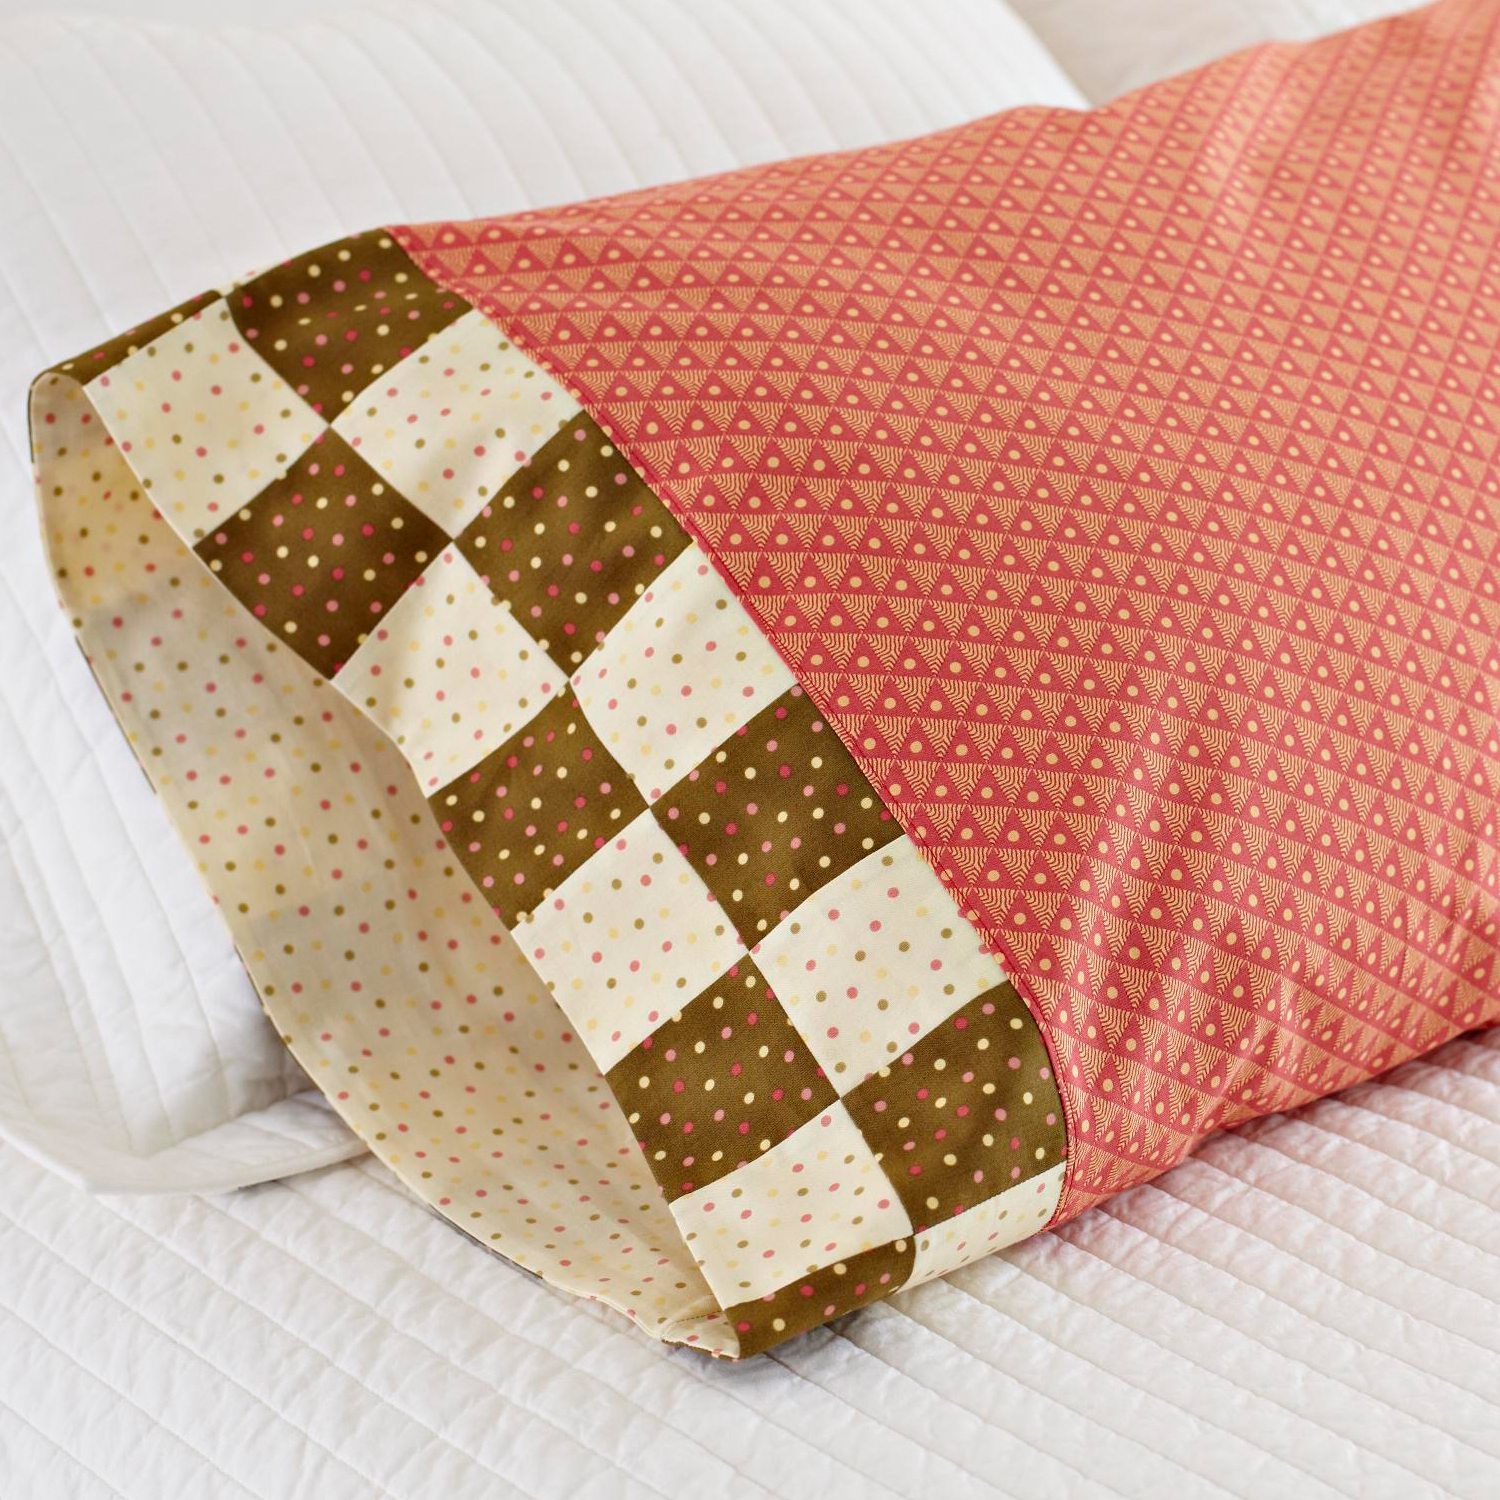 Checkerboard Band Pillowcase